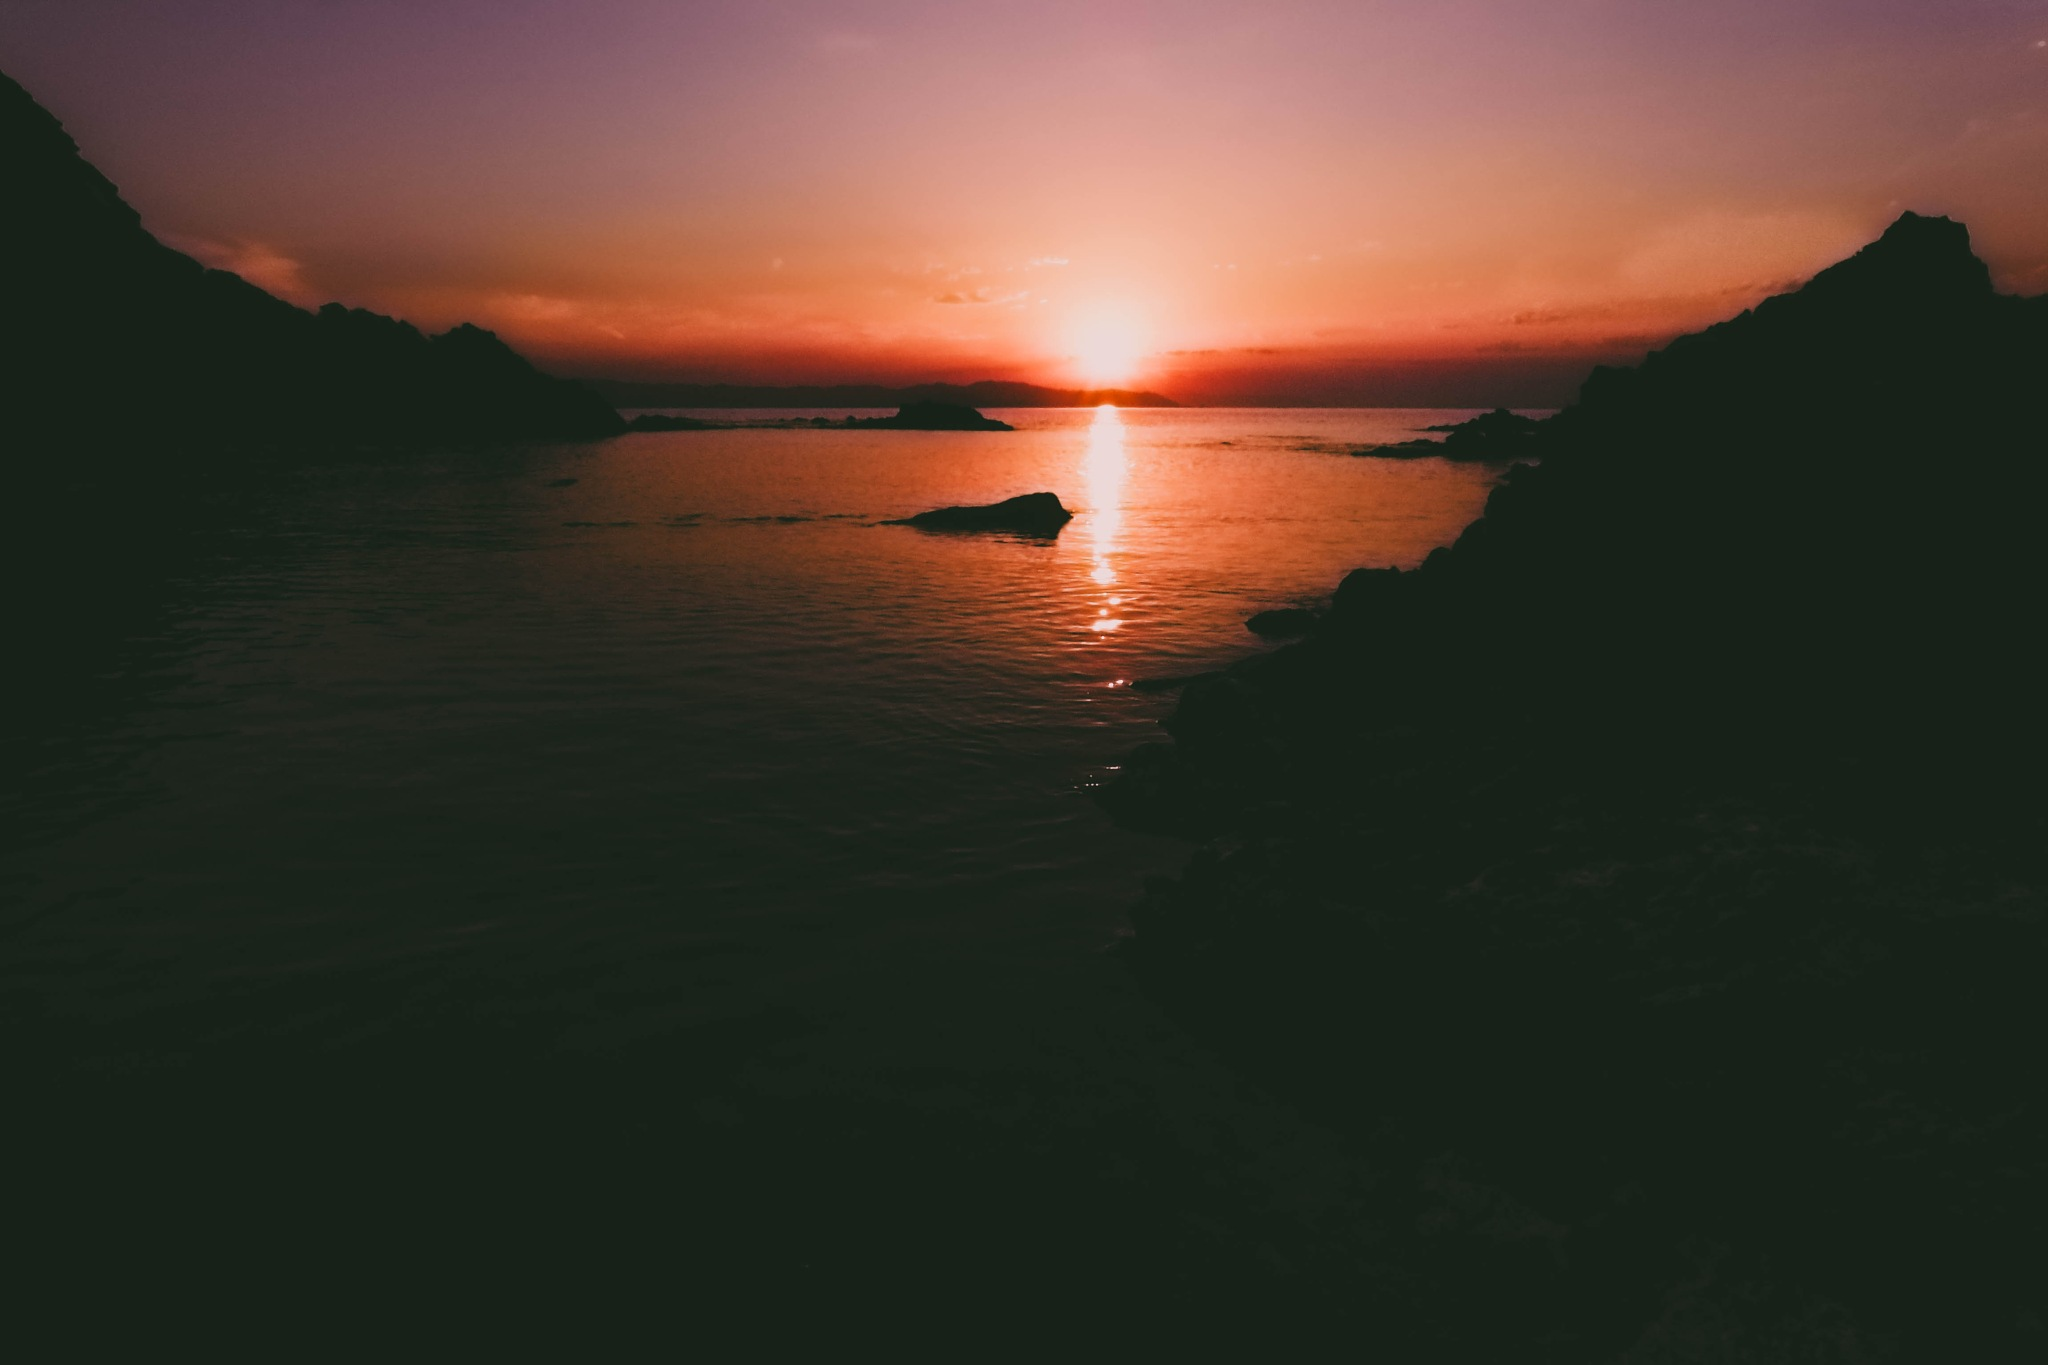 Sunset by Wounded Man